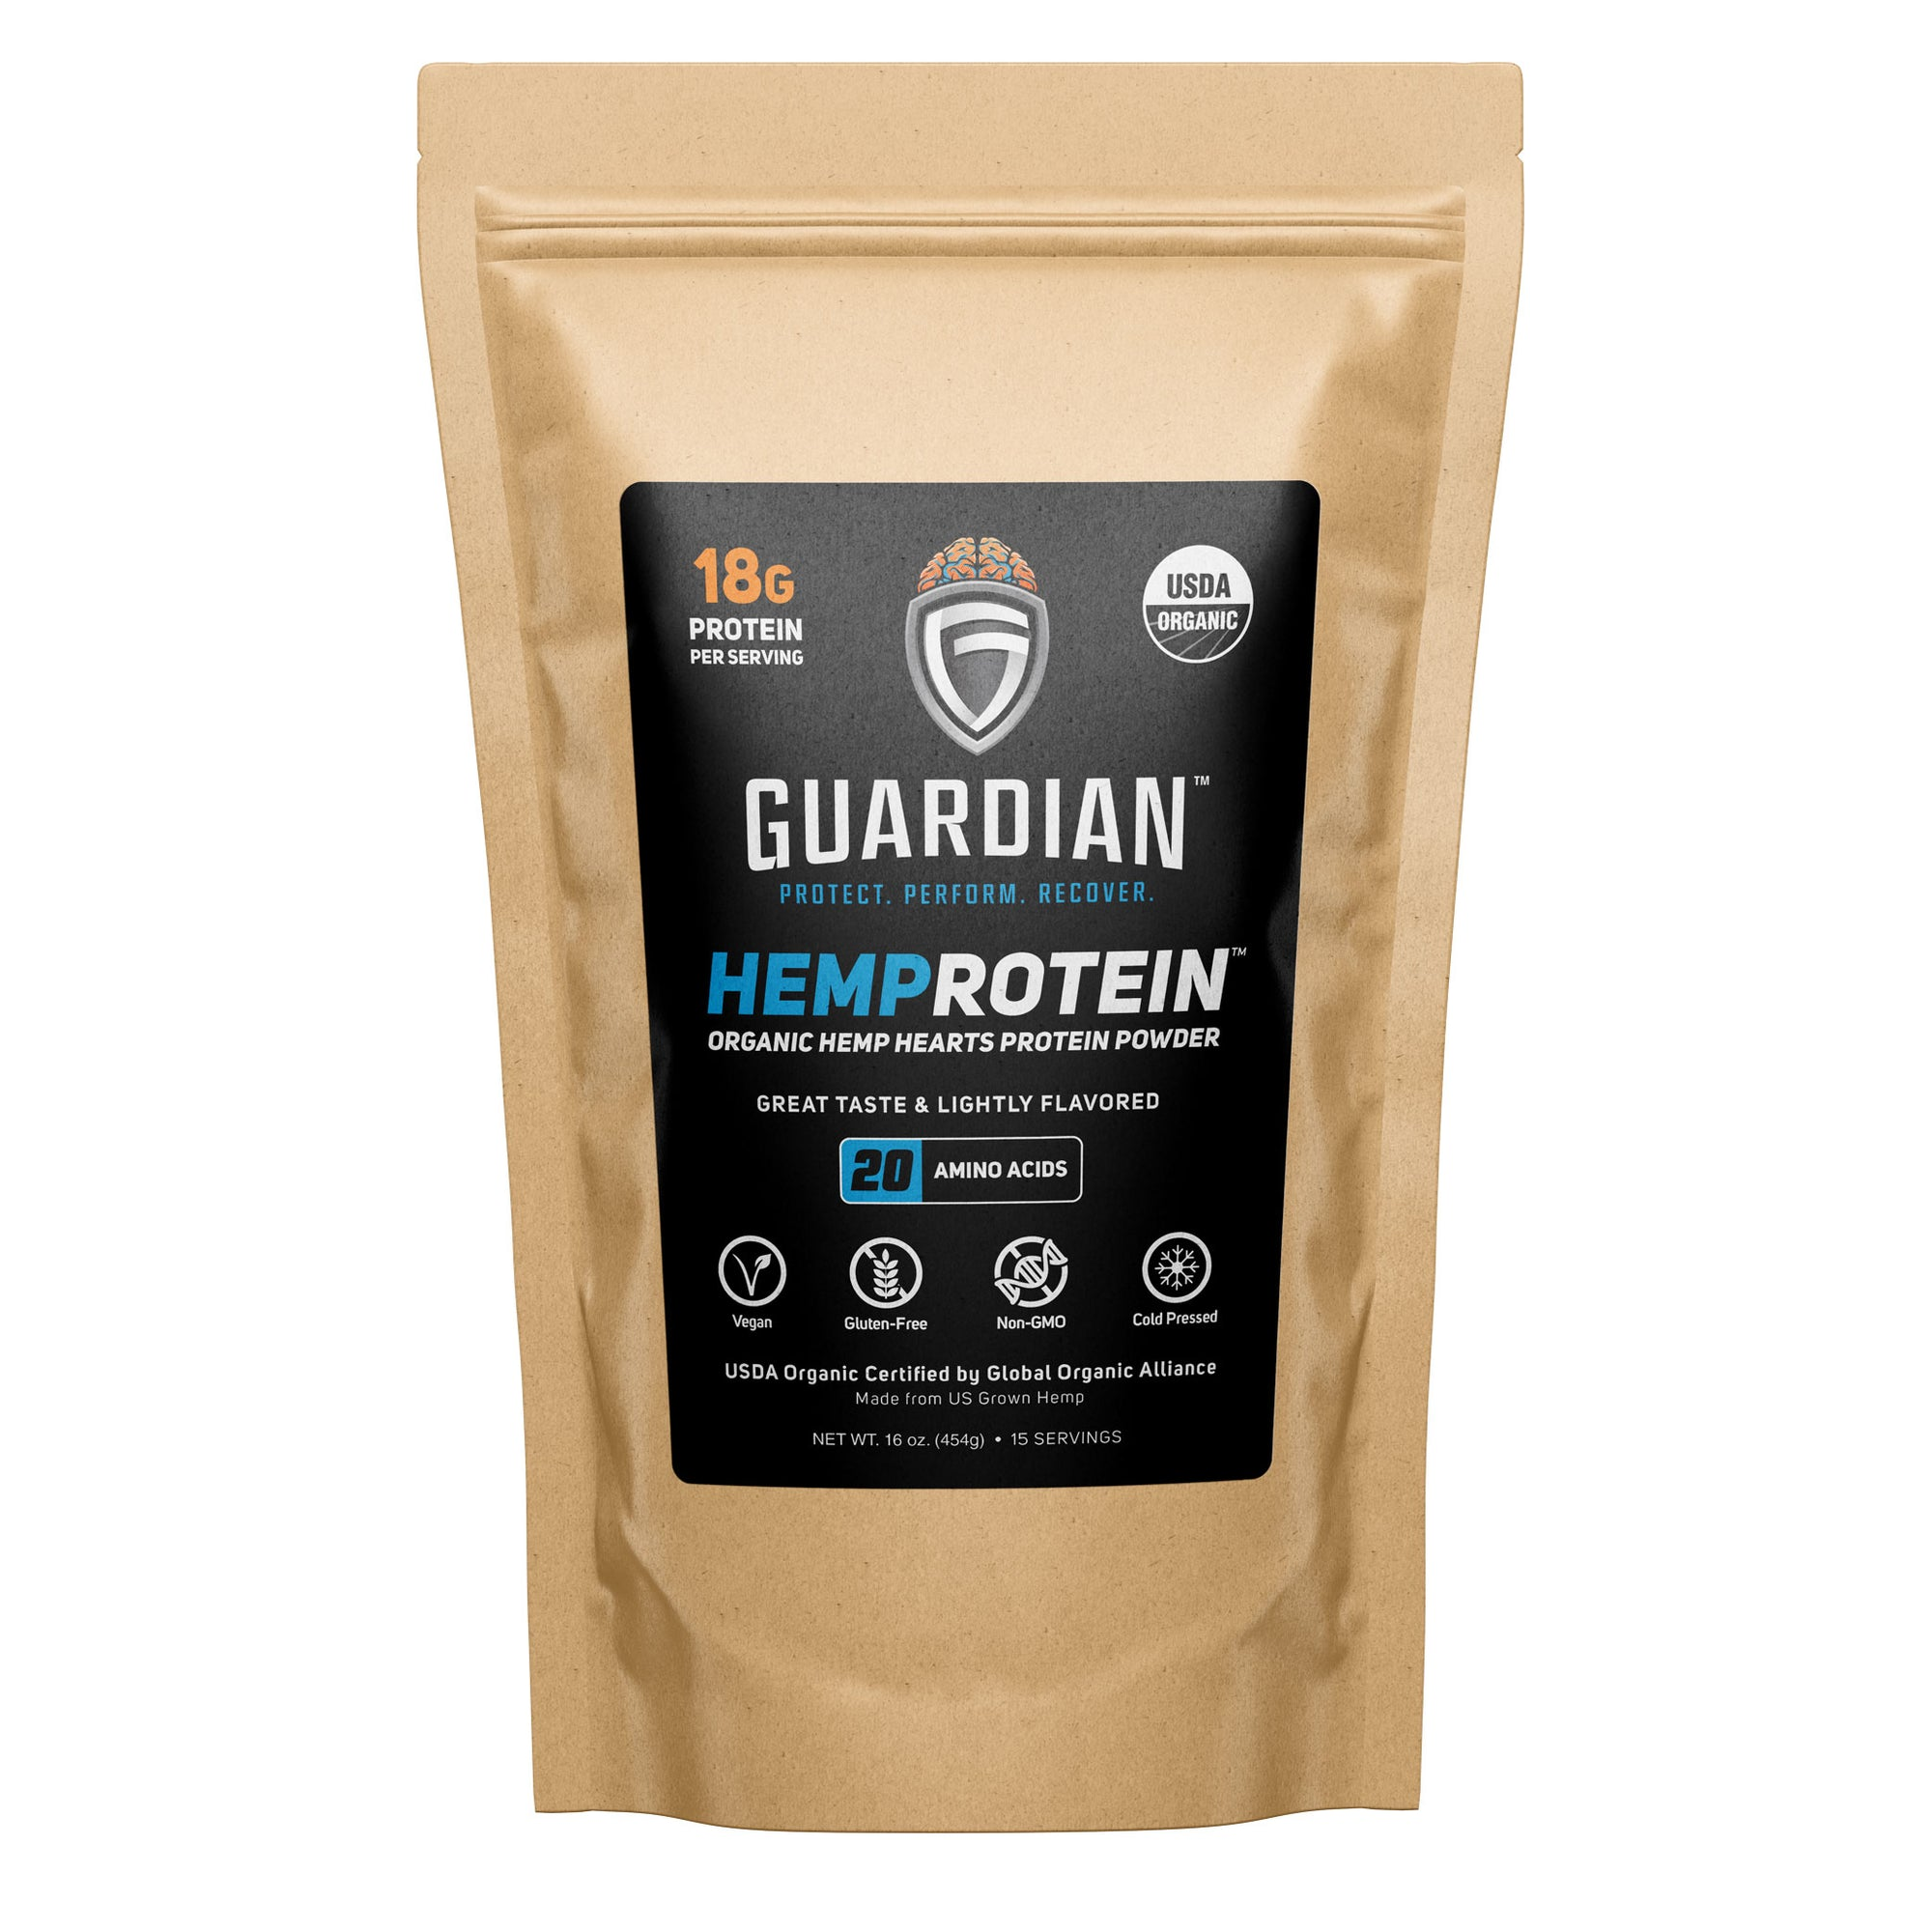 Guardian Hemprotein Powder Front